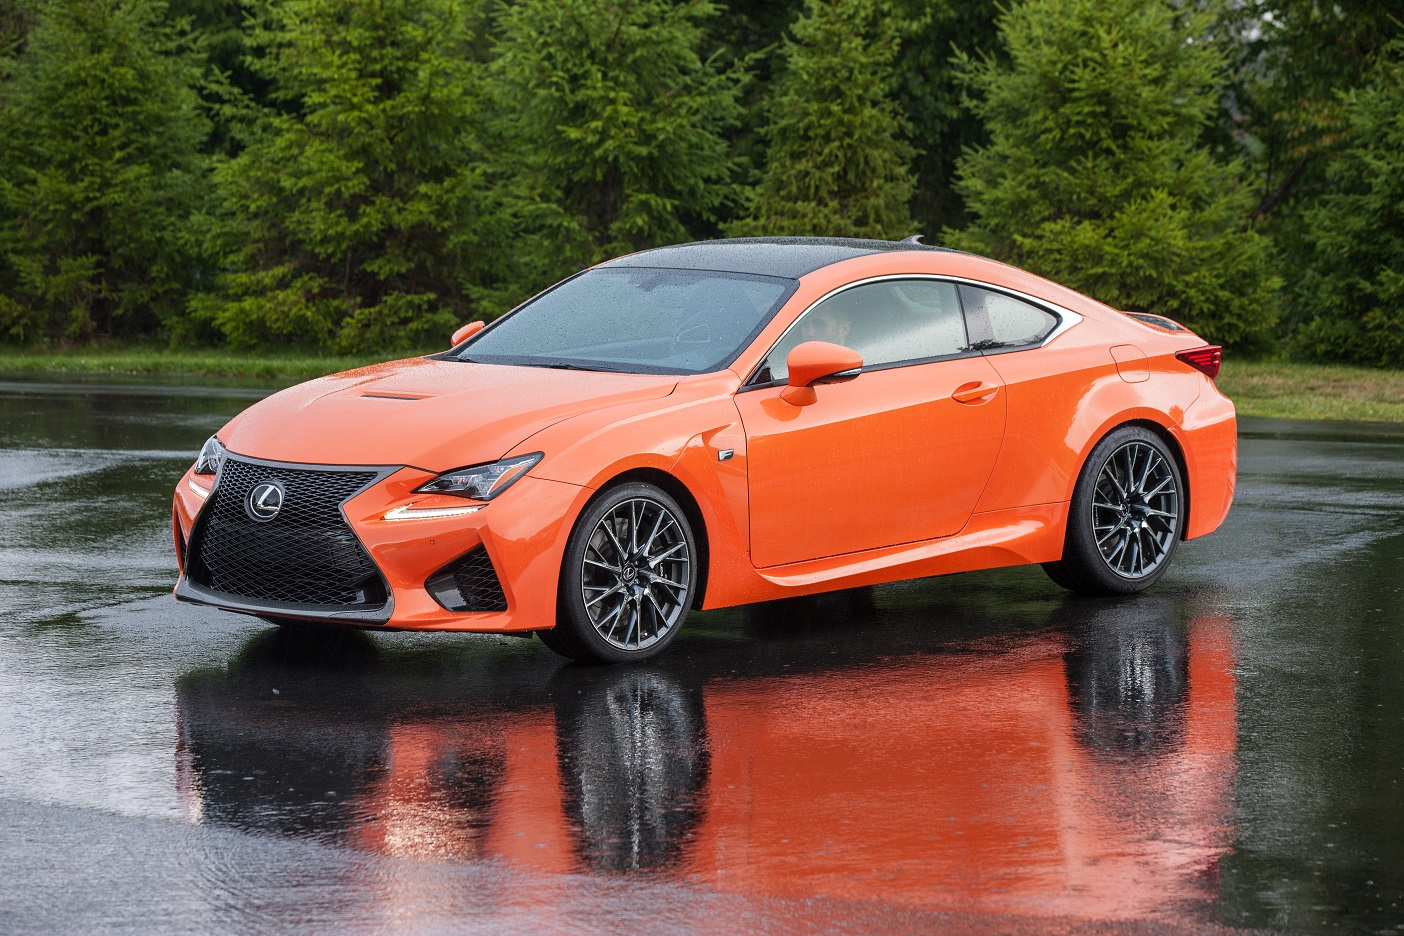 Forged from the track, up: the 2017 Lexus RC F answers the call of the road